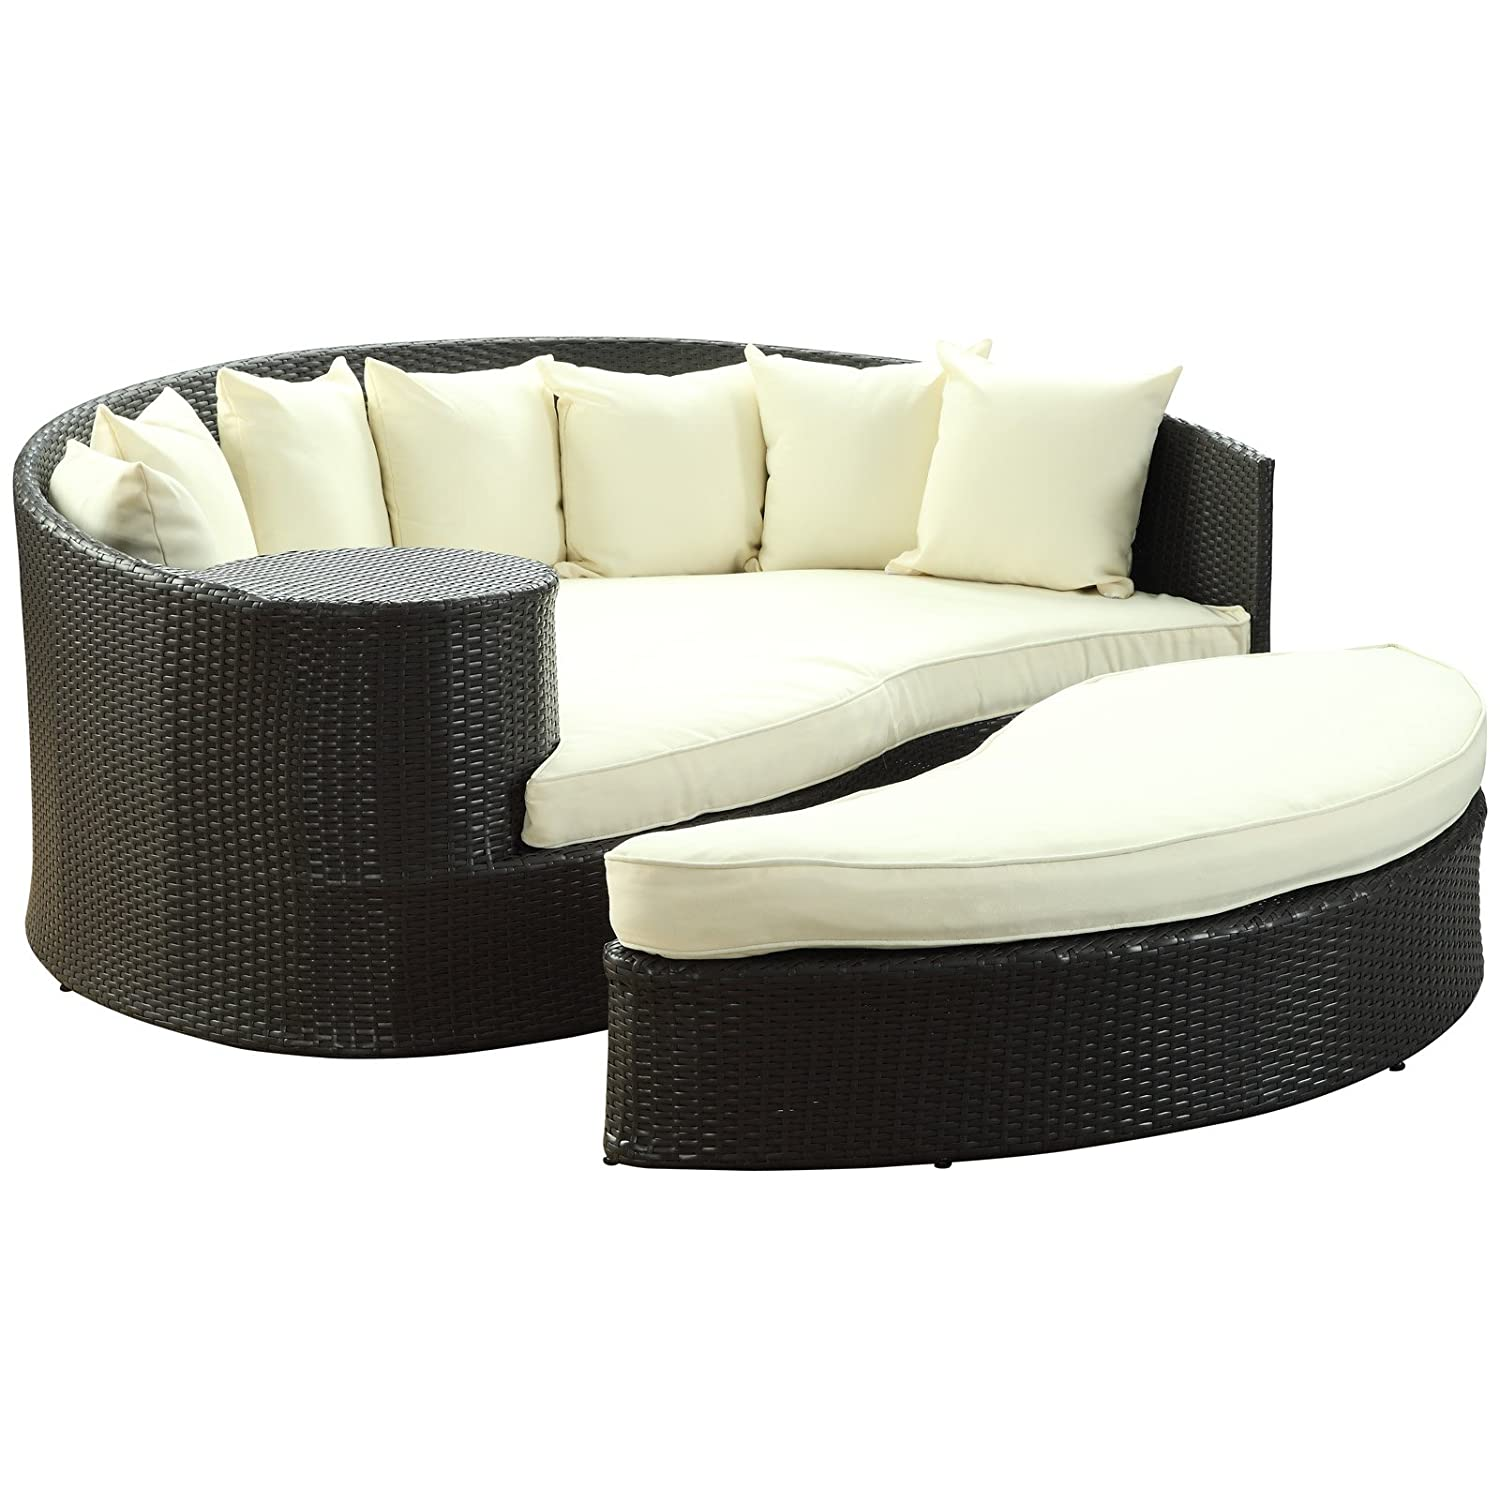 Outdoor Wicker Daybed with Ottoman All Weather Synthetic